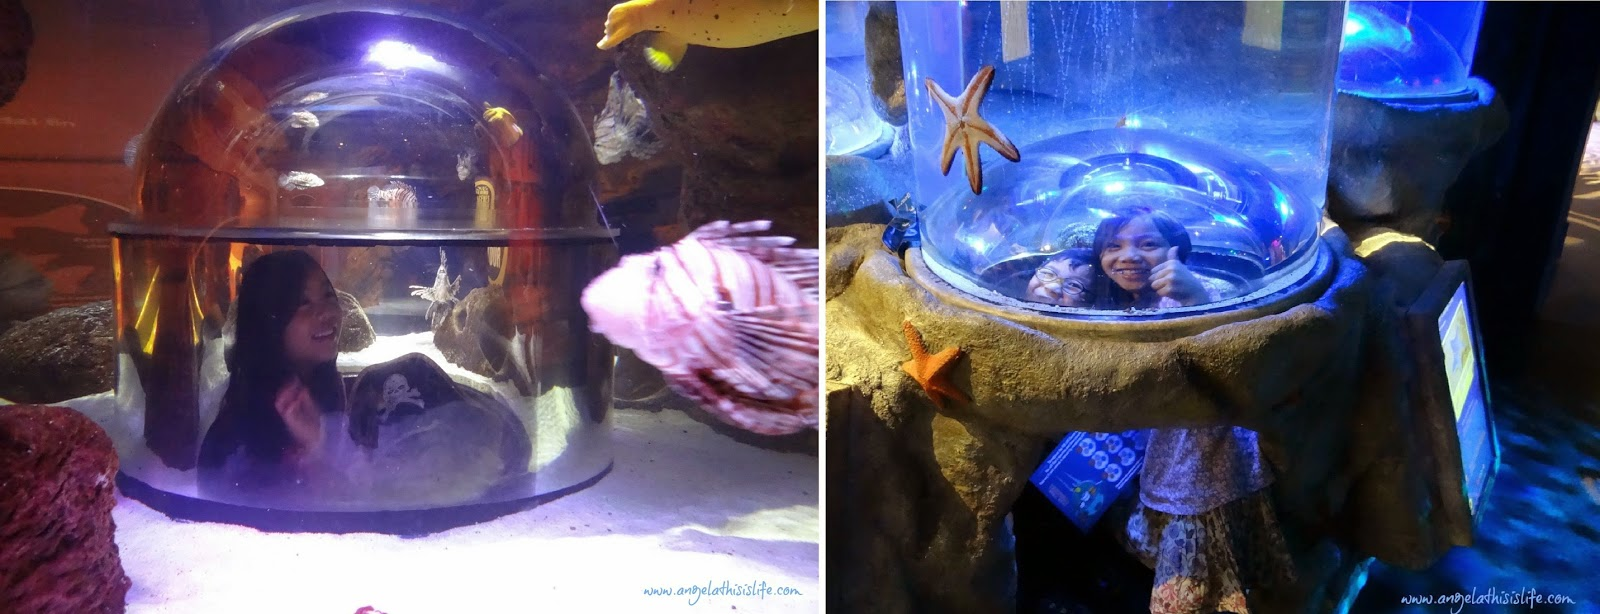 Sea Life Manchester half term, The Octonauts at Sea life, Family Half Term Day Out